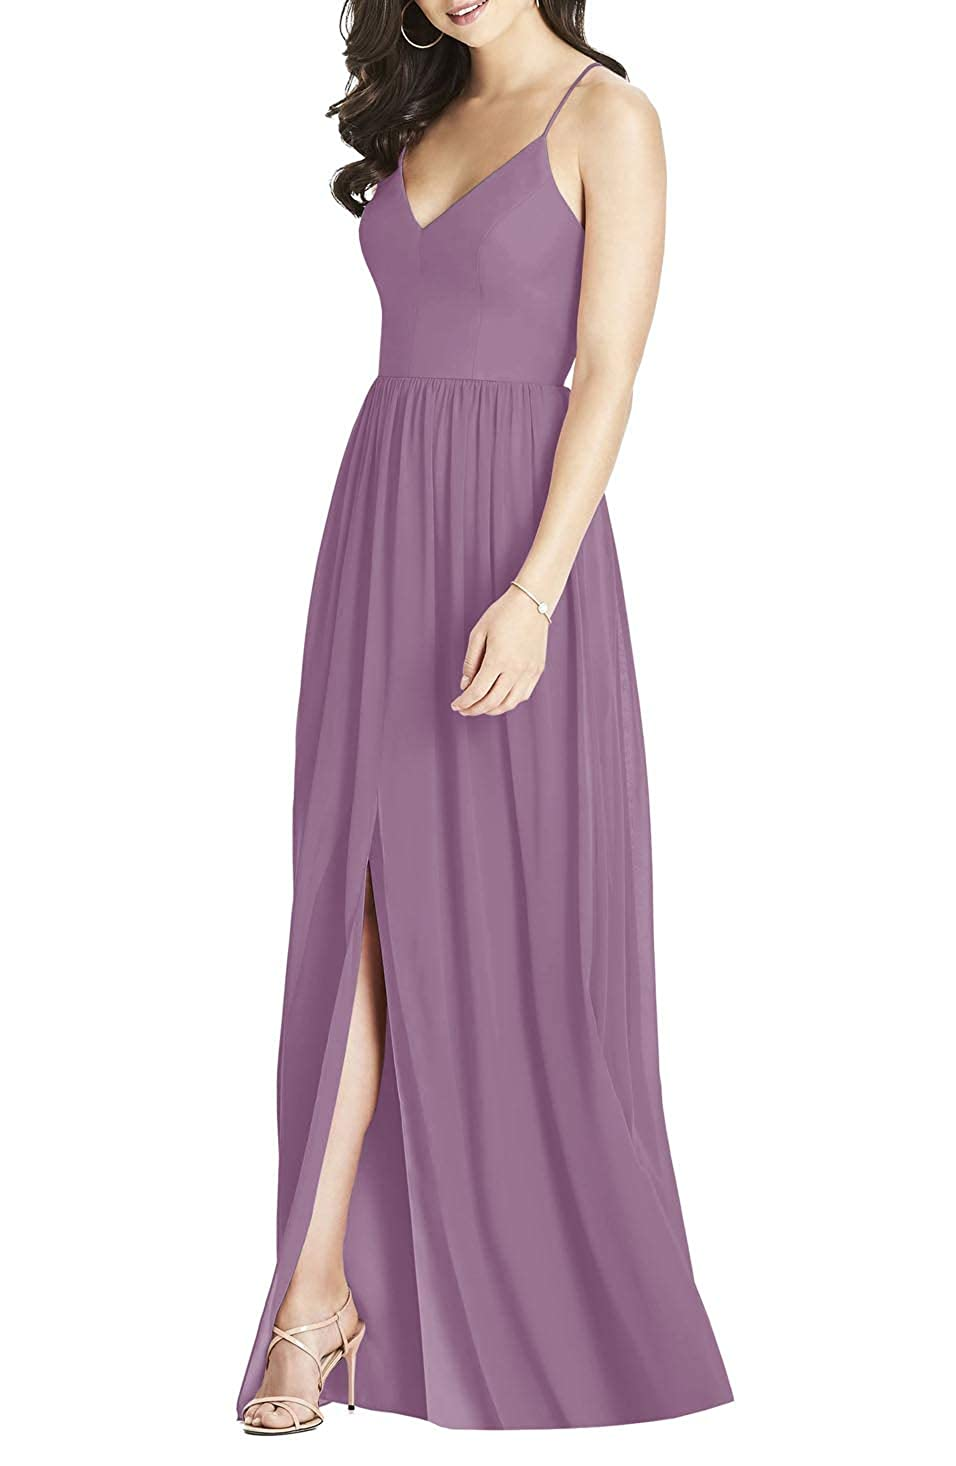 Mauve YUSHENGSM Women's Spaghetti Strap Prom Dresses Long Formal Evening Bridesmaid Party Gown